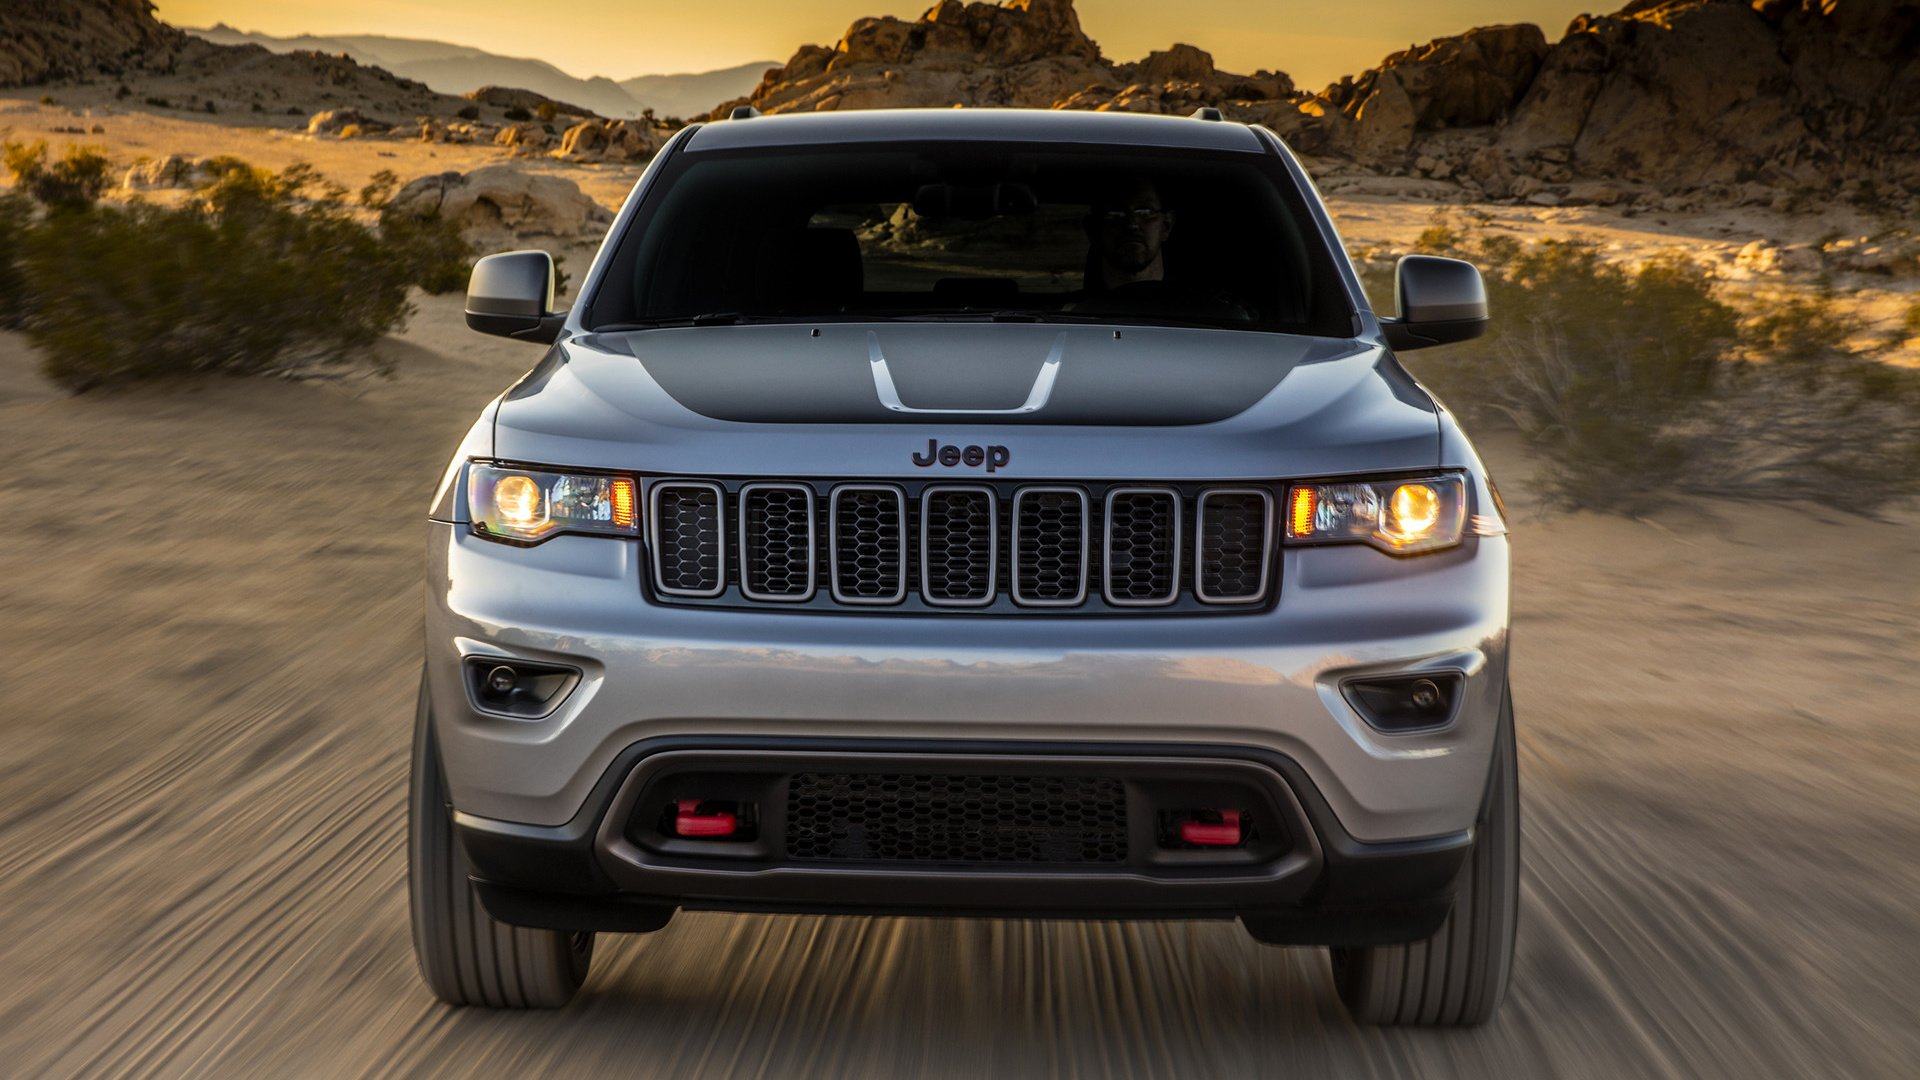 2017 Jeep Grand Cherokee Trailhawk   Wallpapers and HD Images 1920x1080